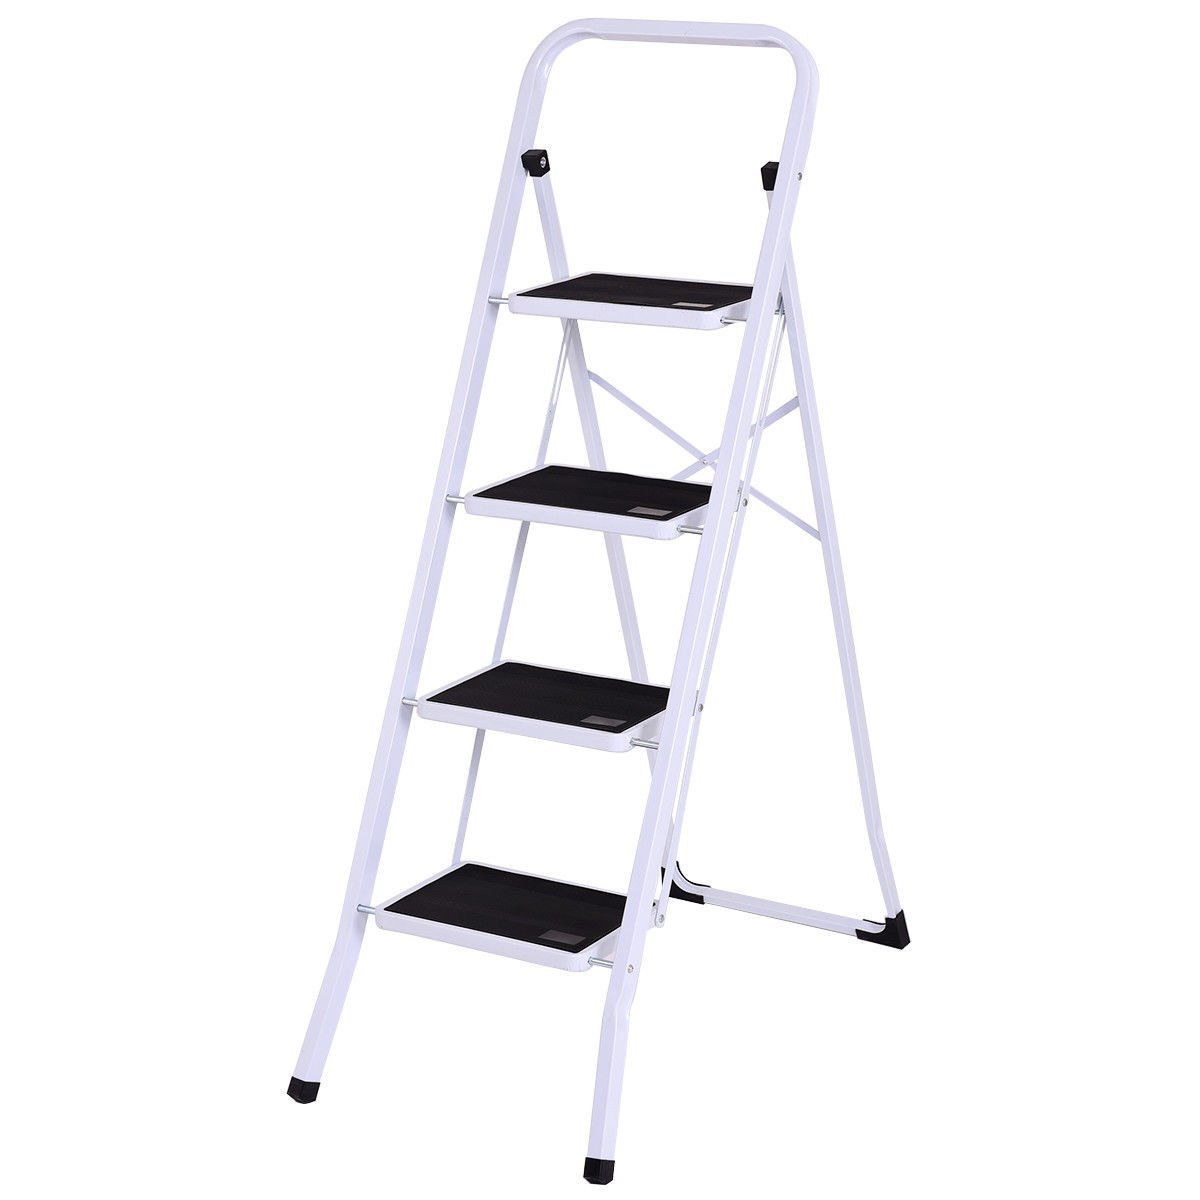 GHP 330-Lbs Capacity White & Black Steel 4-Step Folding Ladder with Curved Legs